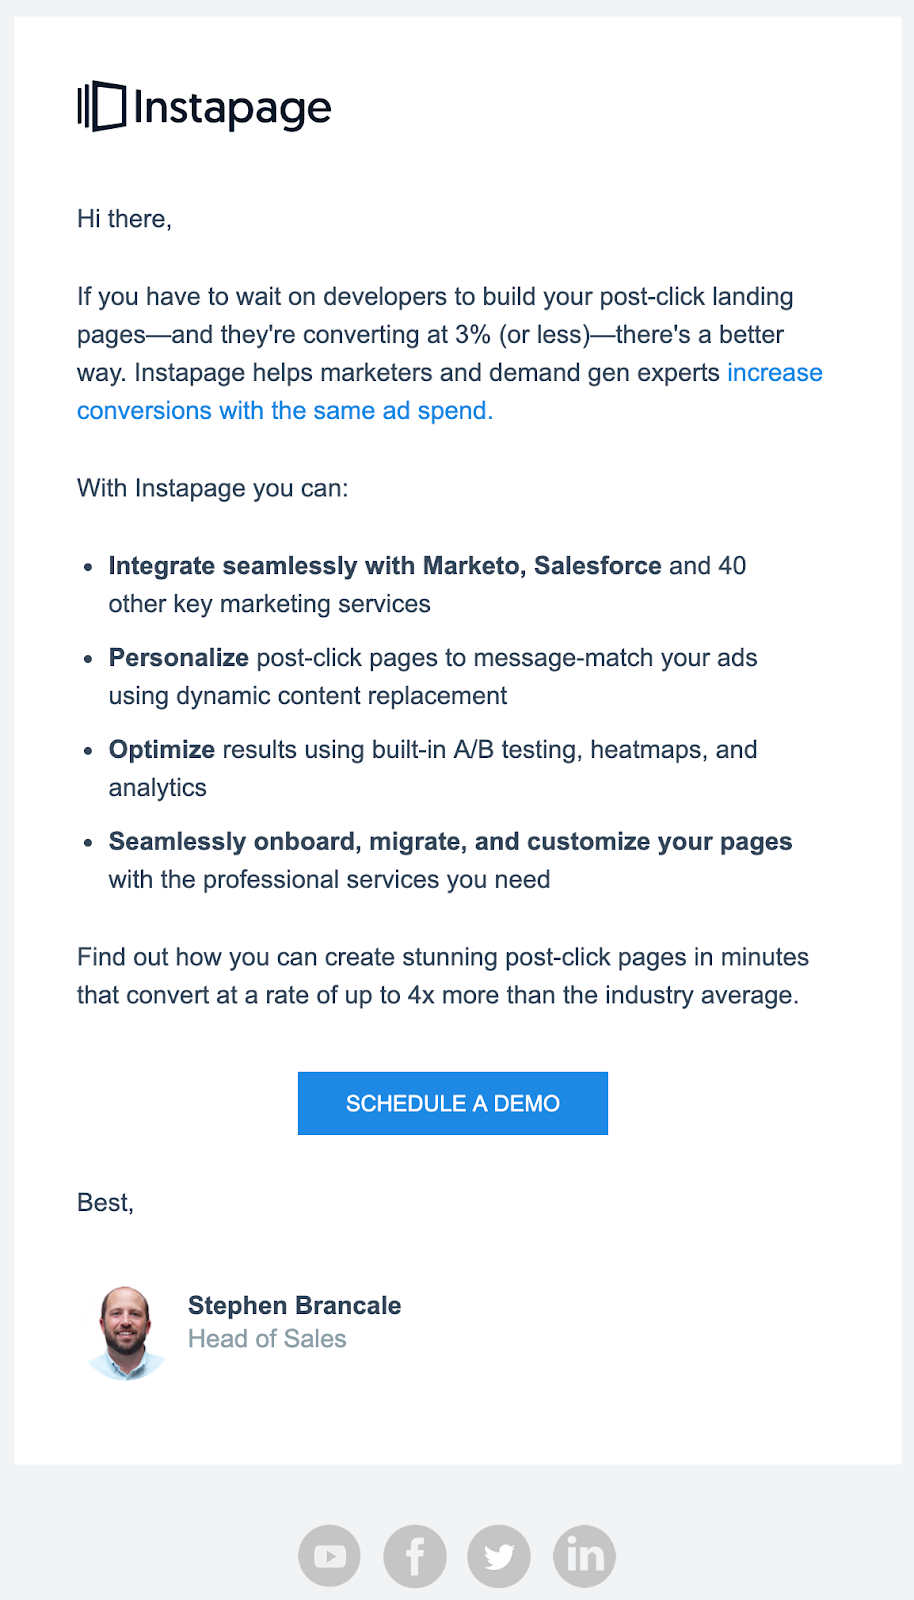 Instapage sales email